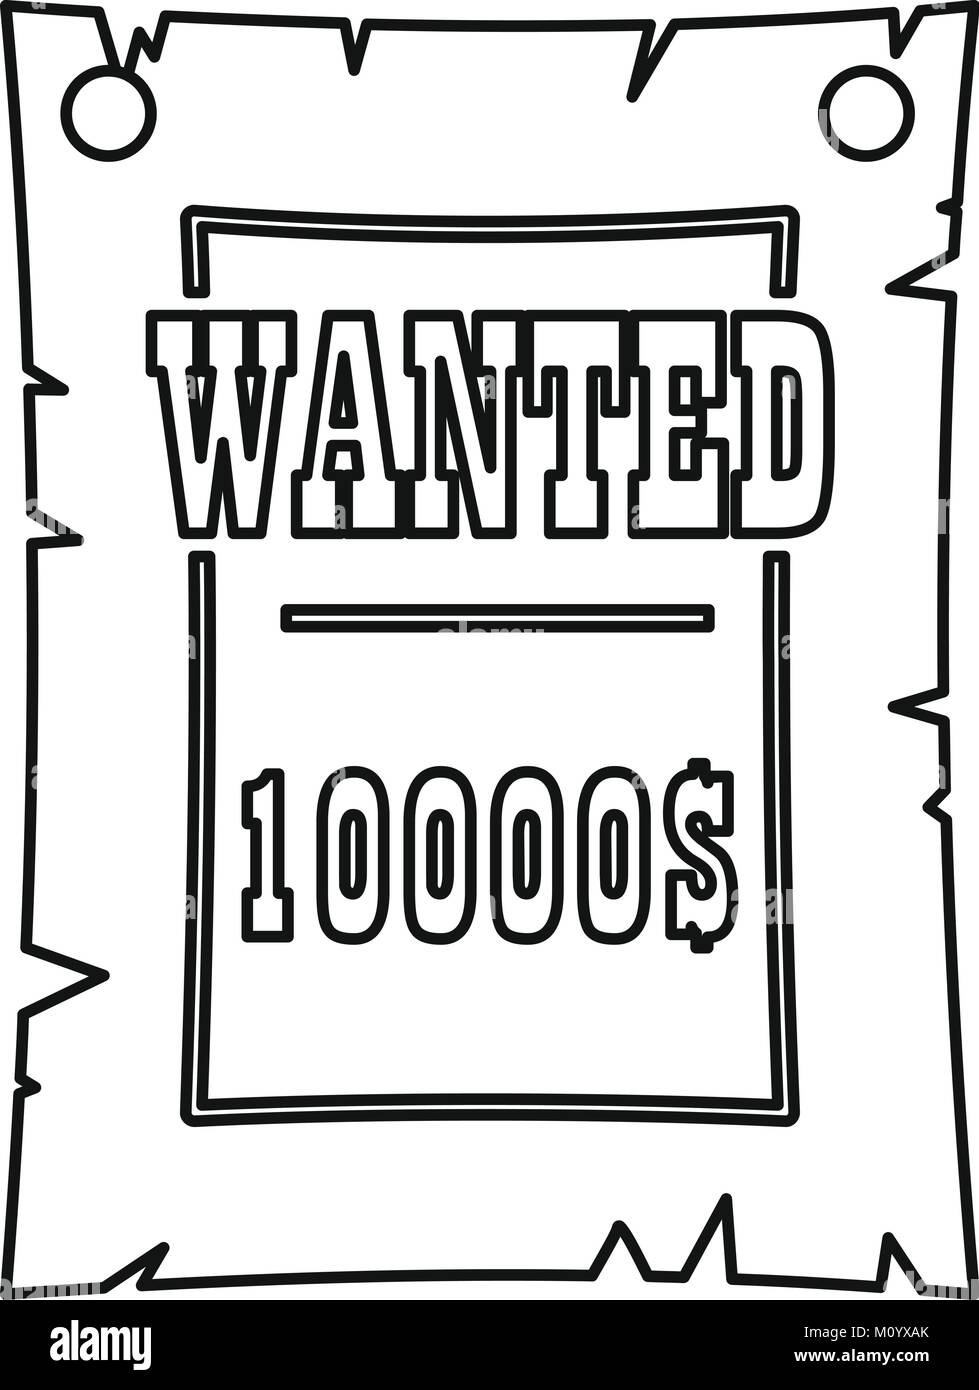 Outlaw Wanted Poster Stockfotos & Outlaw Wanted Poster Bilder - Alamy